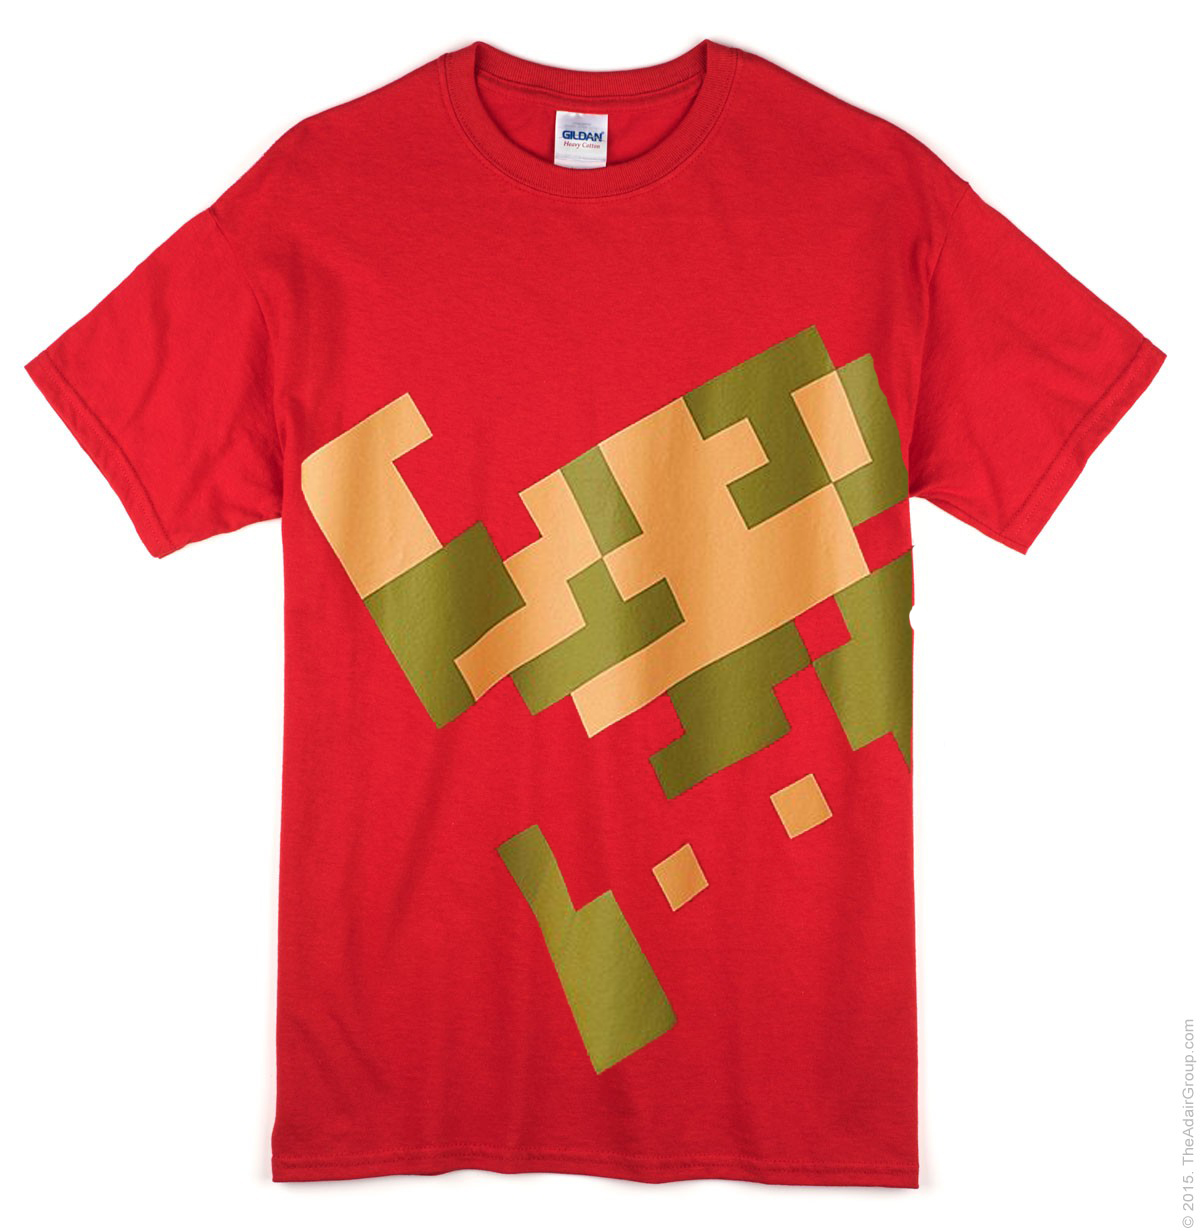 Red uniqlo t shirt for Uniqlo t shirt sizing